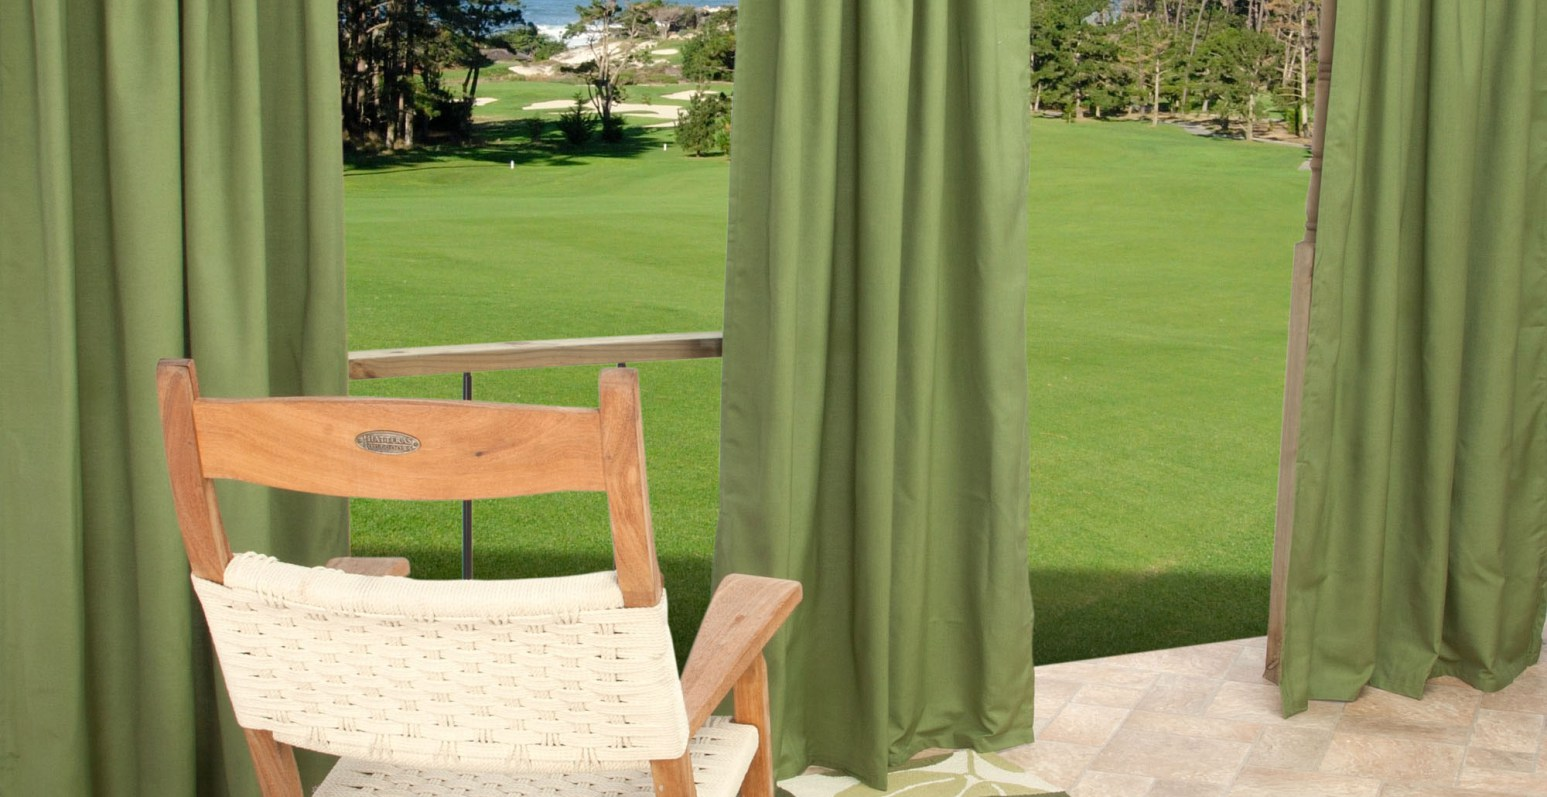 tfile style of concept wish look how uncategorized drapes and pict astonishing furniture outdoor curtains sound install this freshlove to patio